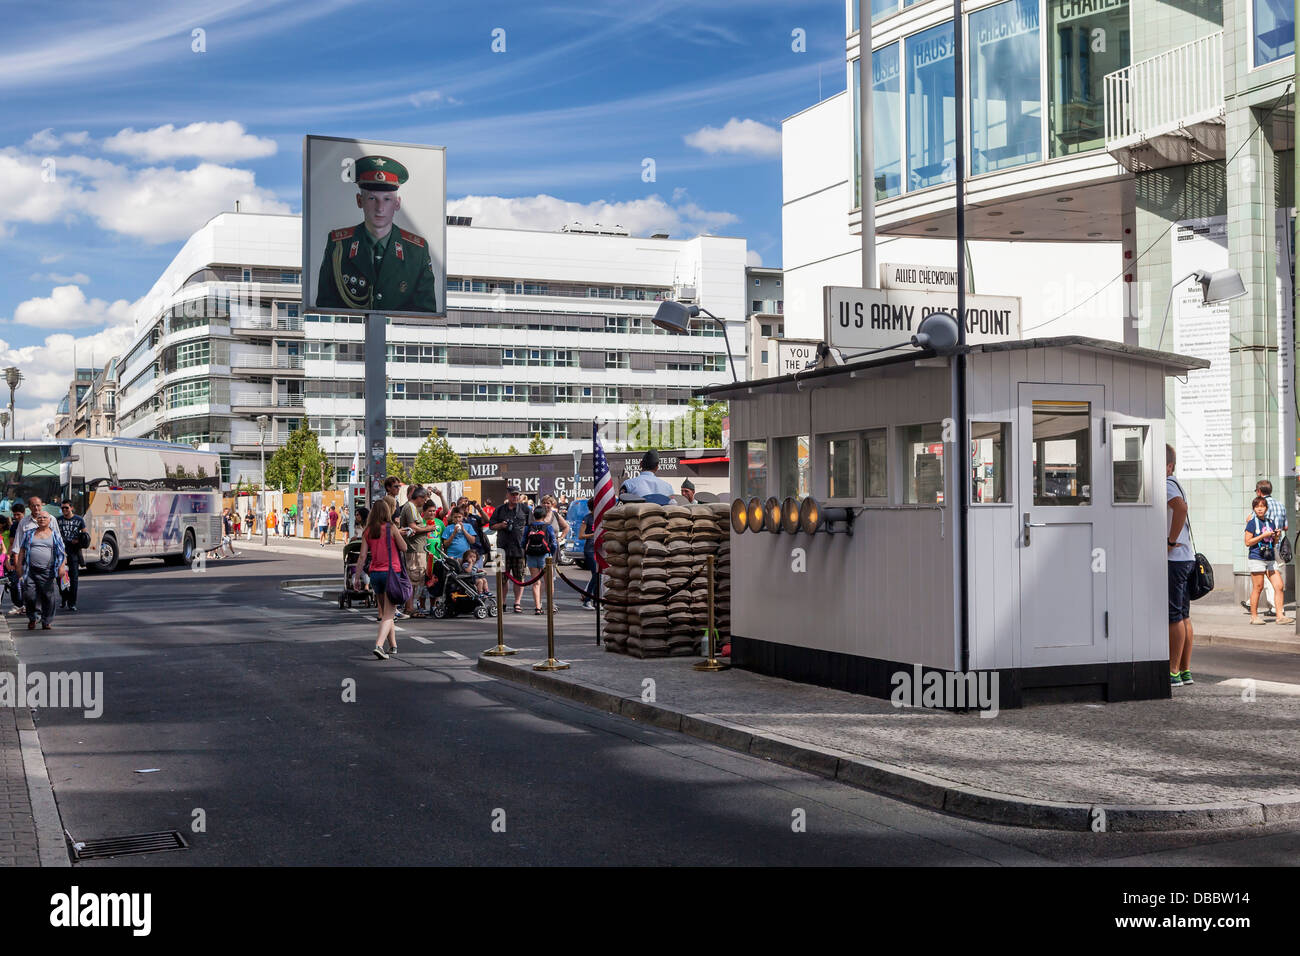 Picture of Soviet (Russian) soldier at Checkpoint Charlie border post - Friederichstrasse, Berlin - Stock Image